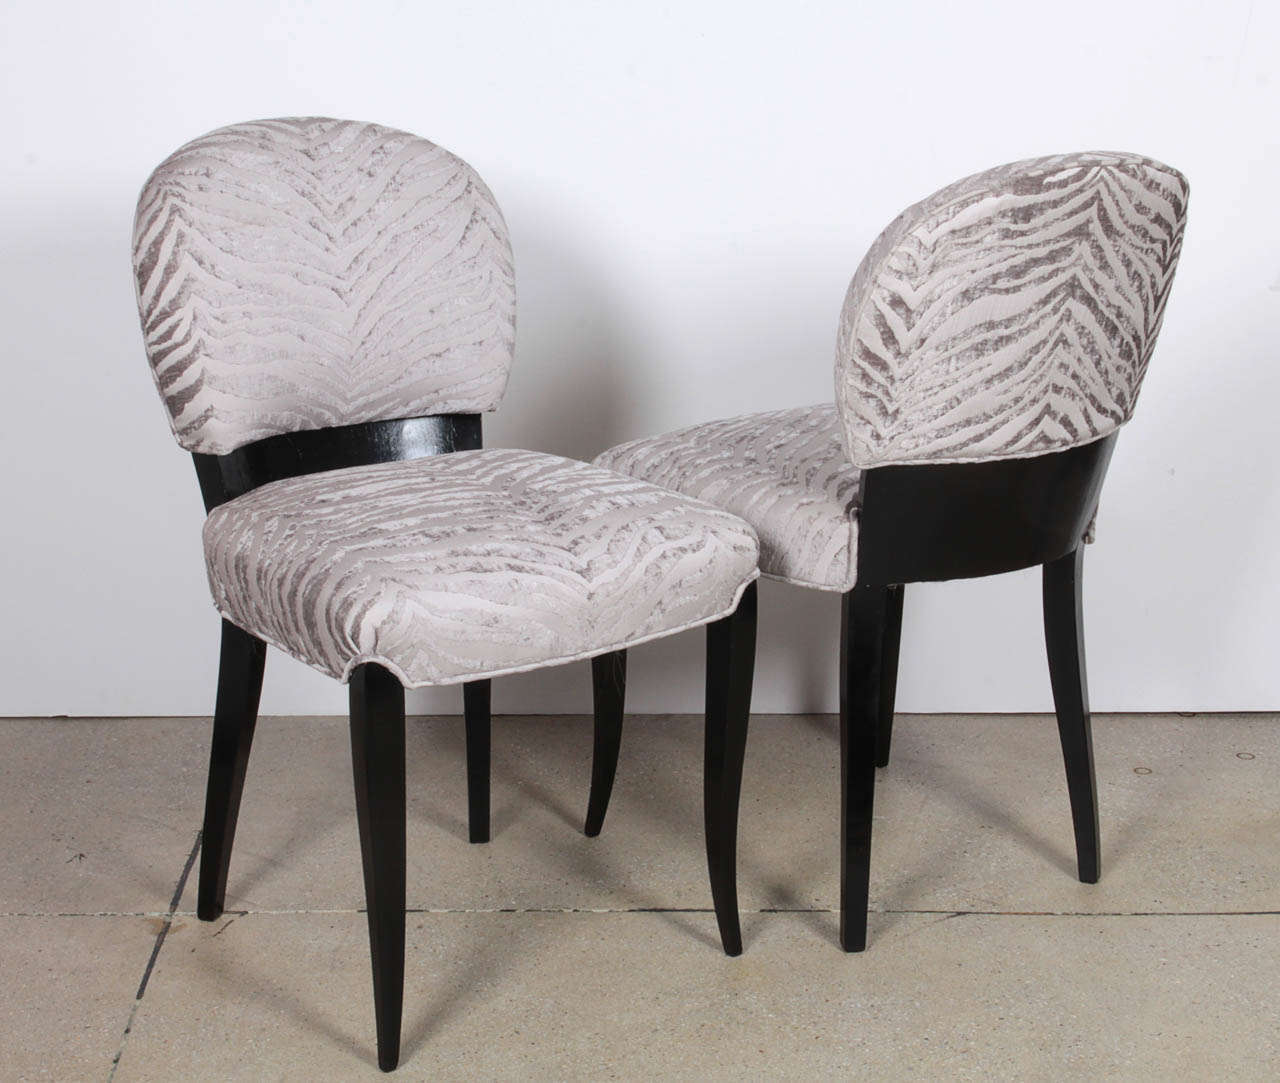 Velvet Luxurious Pair of Black Lacquer Art Deco Side Chairs For Sale